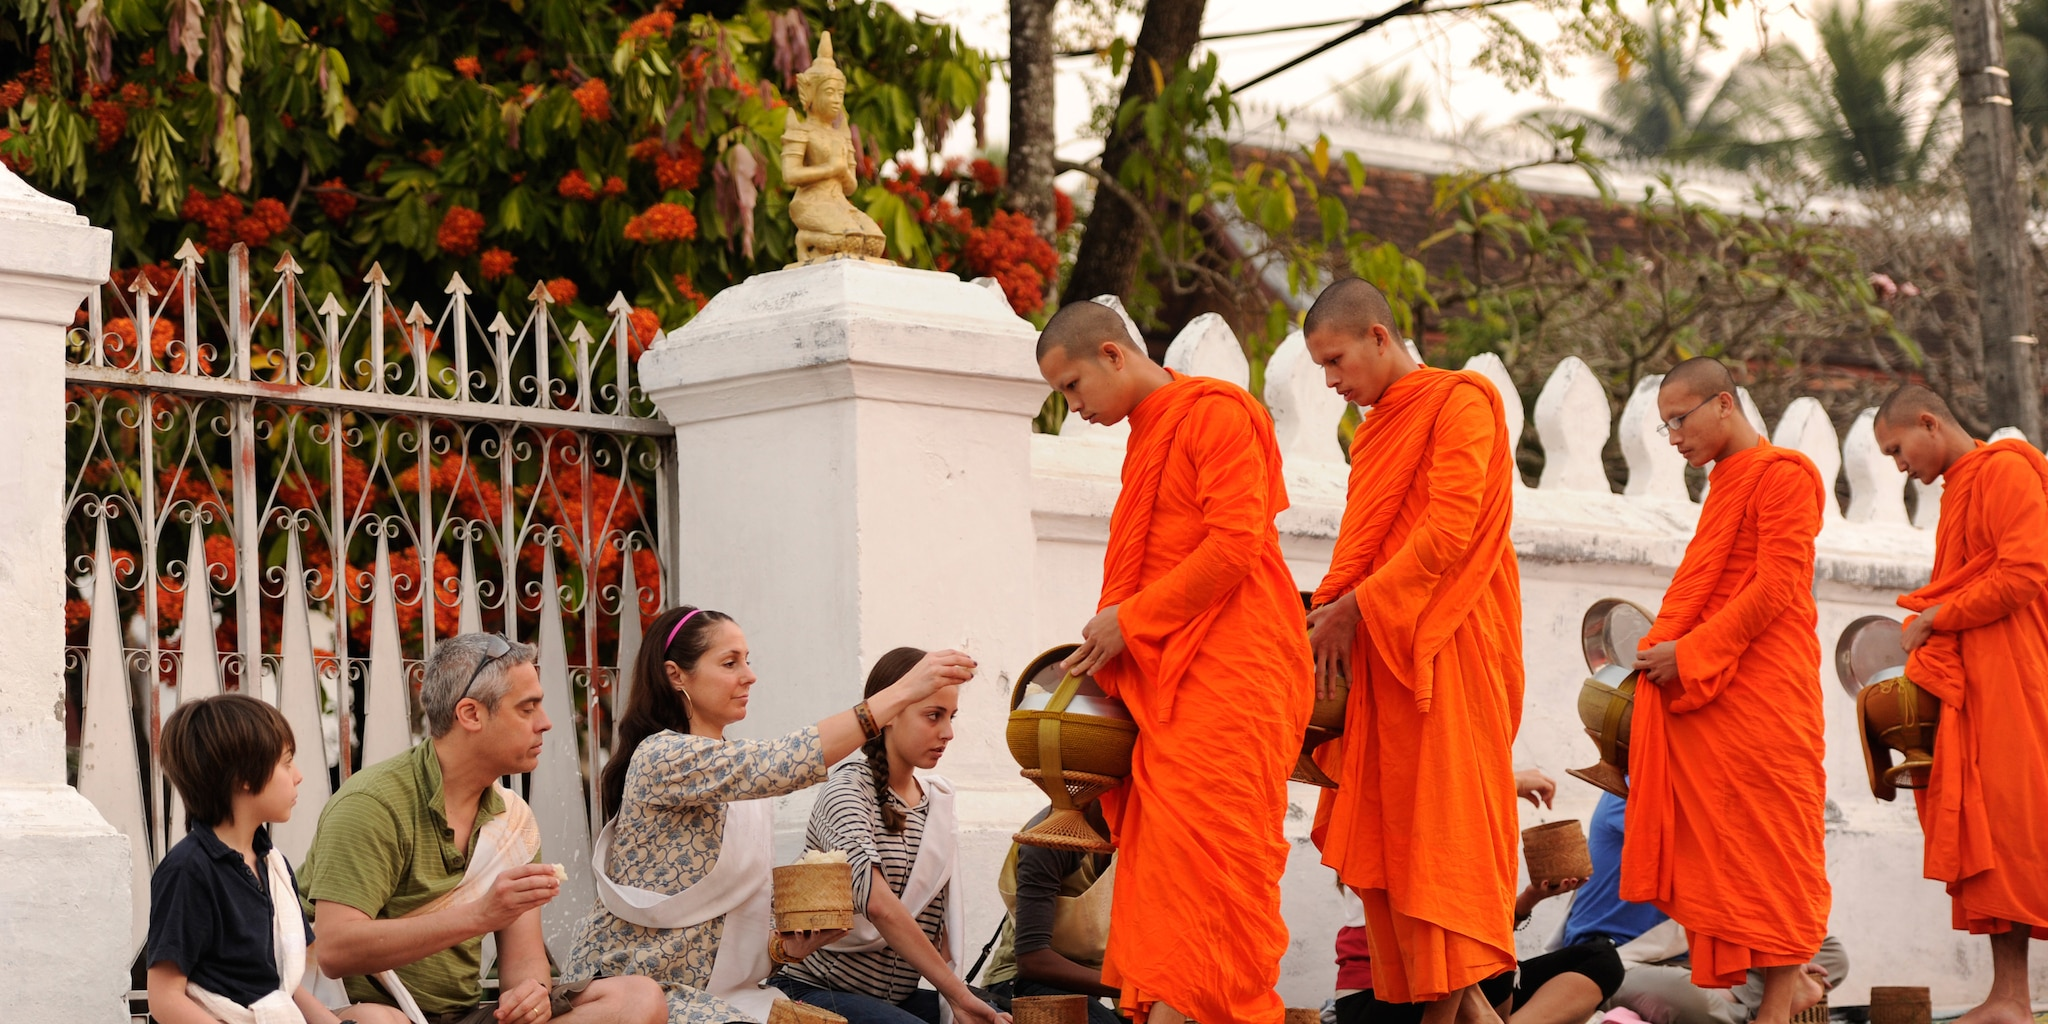 Alms offerings to monks